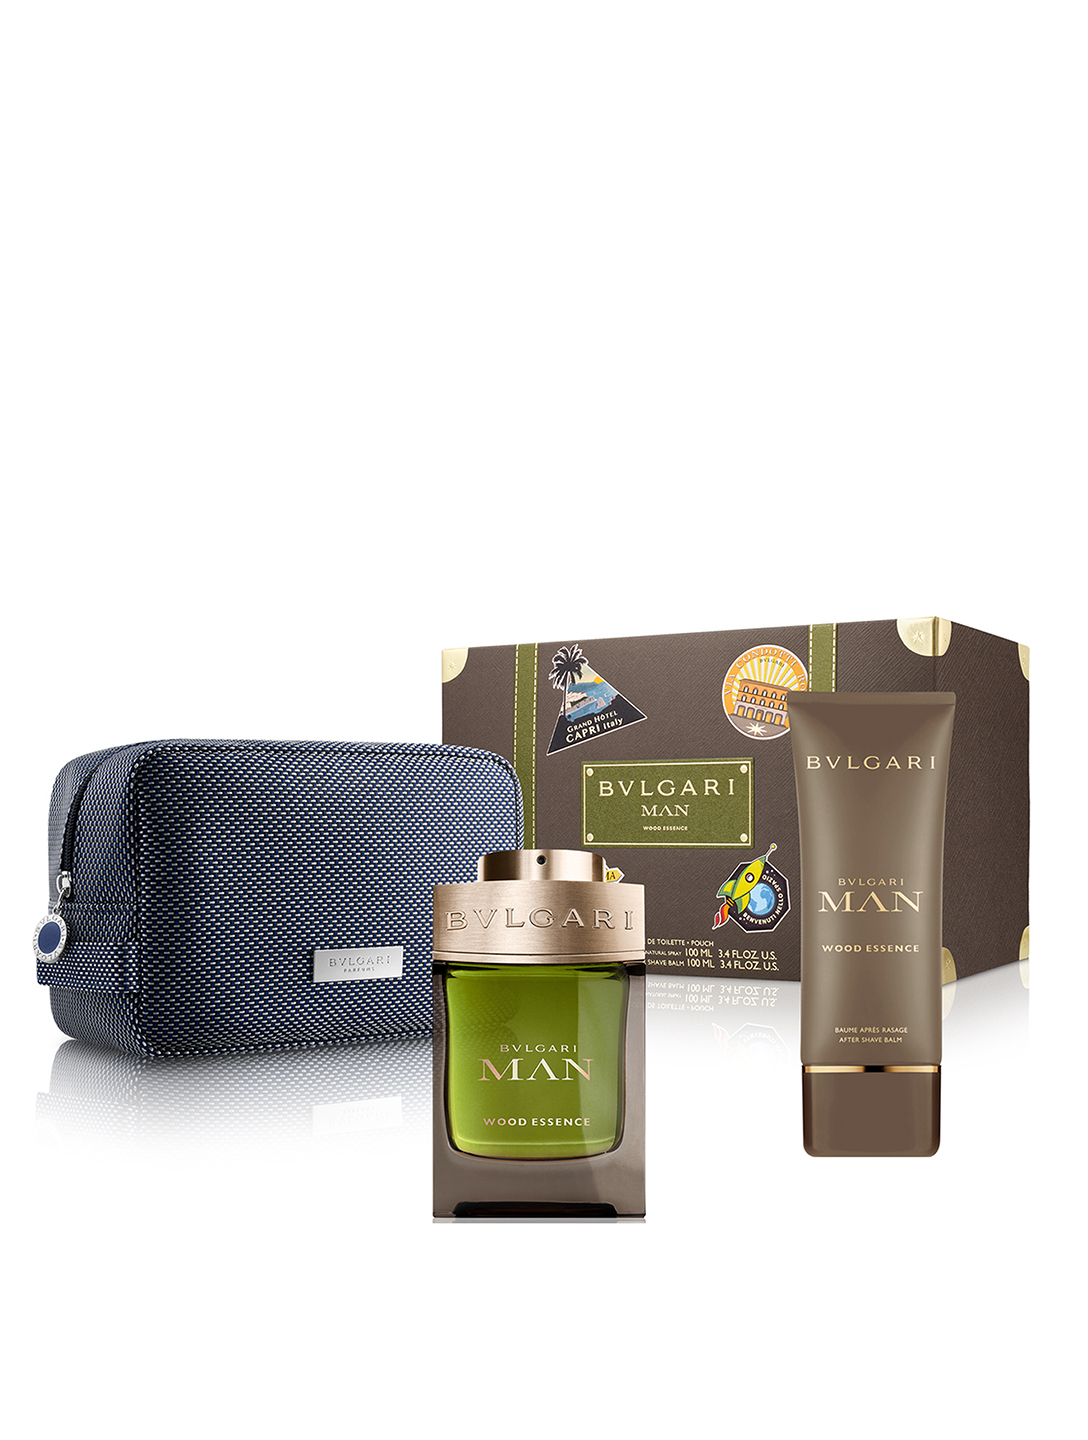 BVLGARI Wood Essence 3-Piece Gift Set Beauty